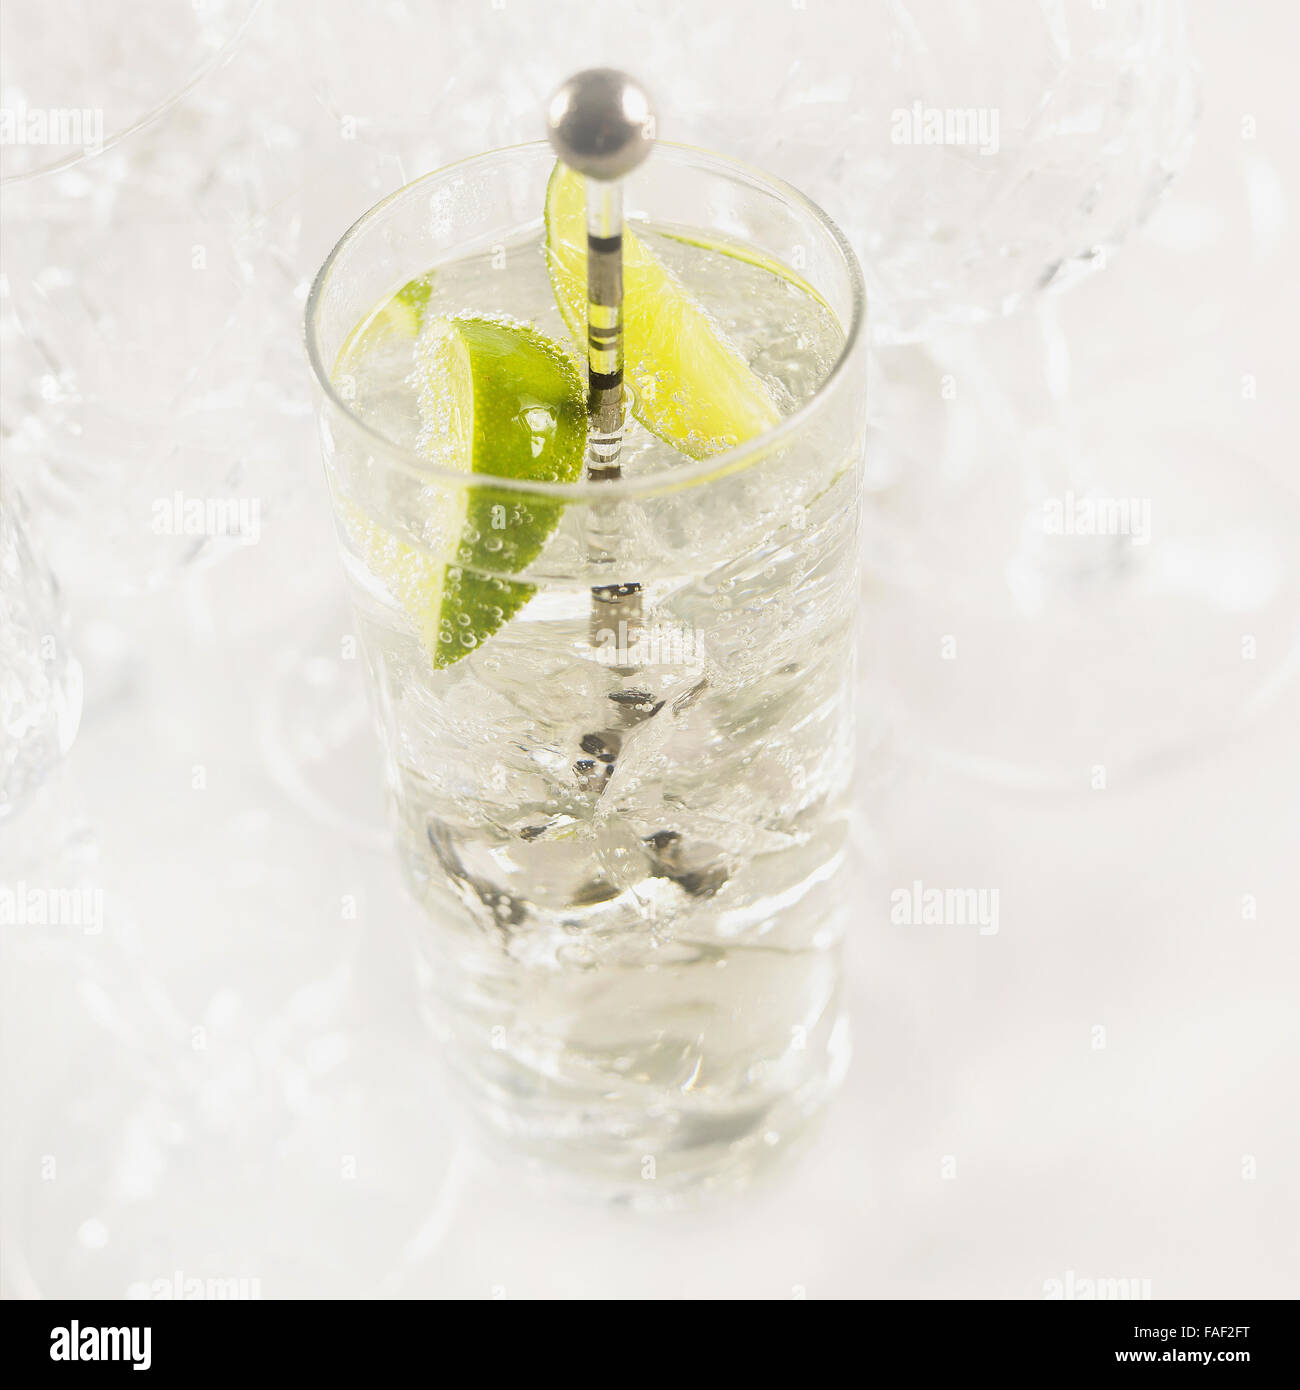 Glass of gin and tonic with ice, fresh sliced lime and drink stirrer. Stock Photo